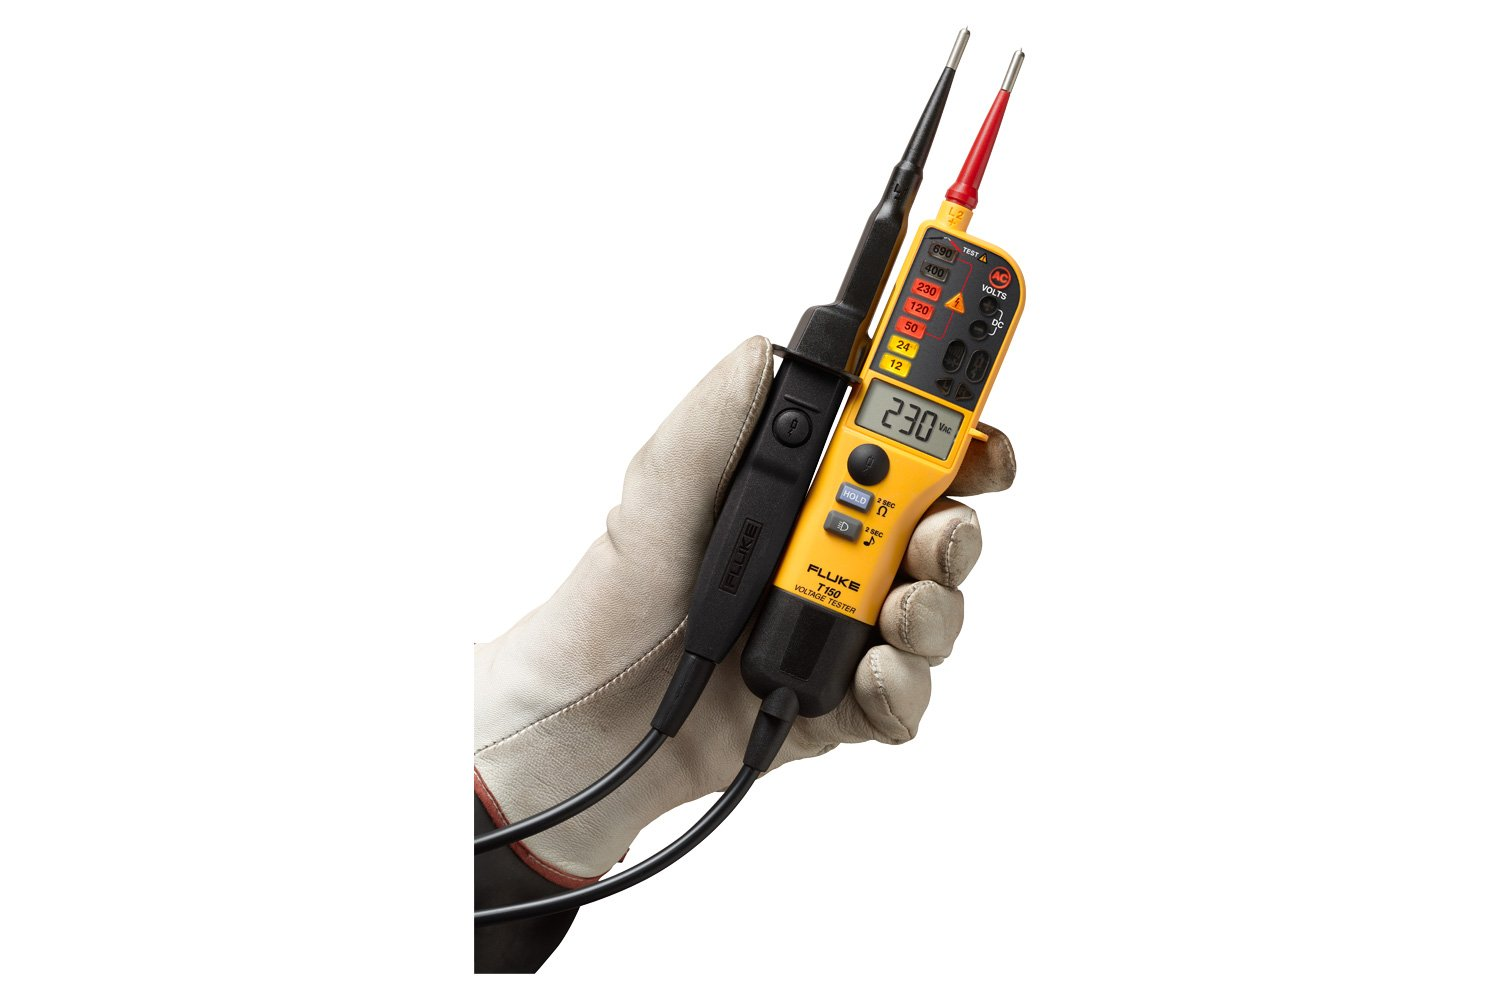 T90 T110 T130 T150 Voltage And Continuity Testers Fluke Electrical Tester Is A Device Which Measures Whether